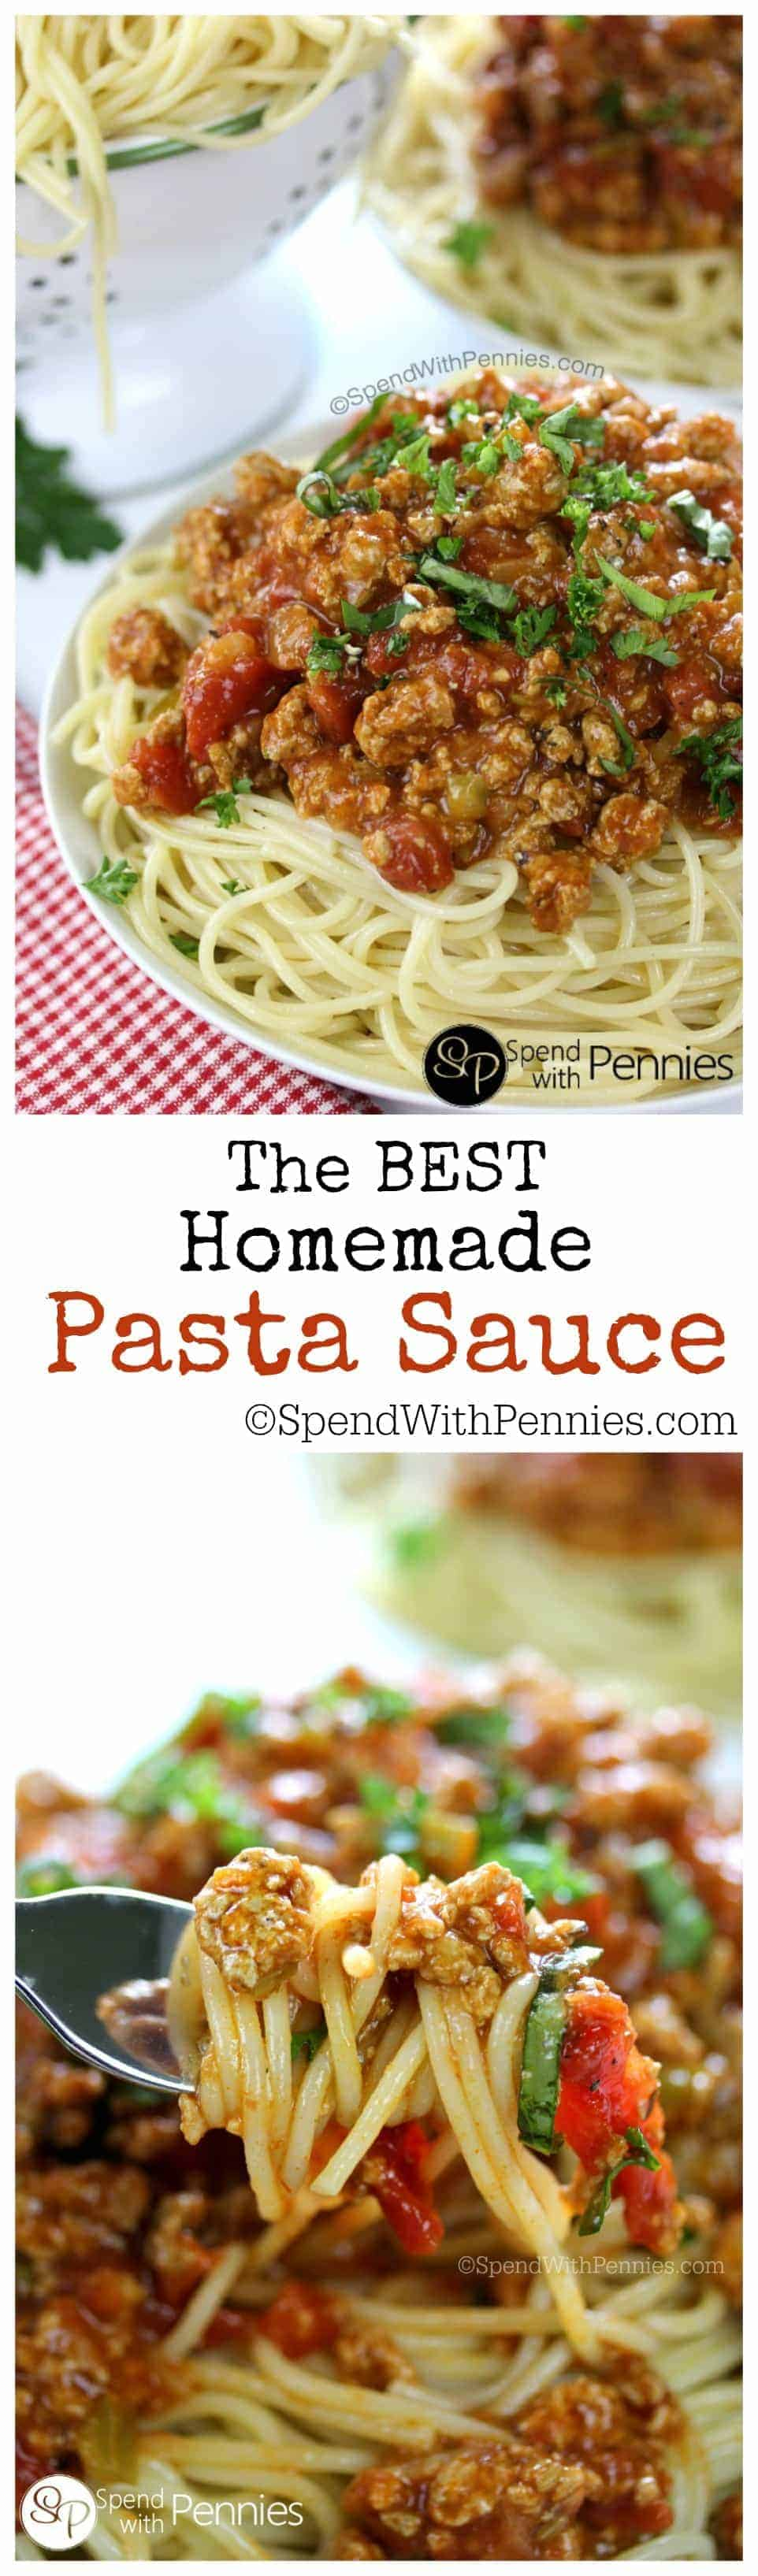 The BEST Homemade Pasta Sauce! This is literally the BEST Homemade Pasta Sauce you'll ever have!  Made with ground turkey or beef, this rich tomato sauce is perfect over spaghetti or in lasagna!